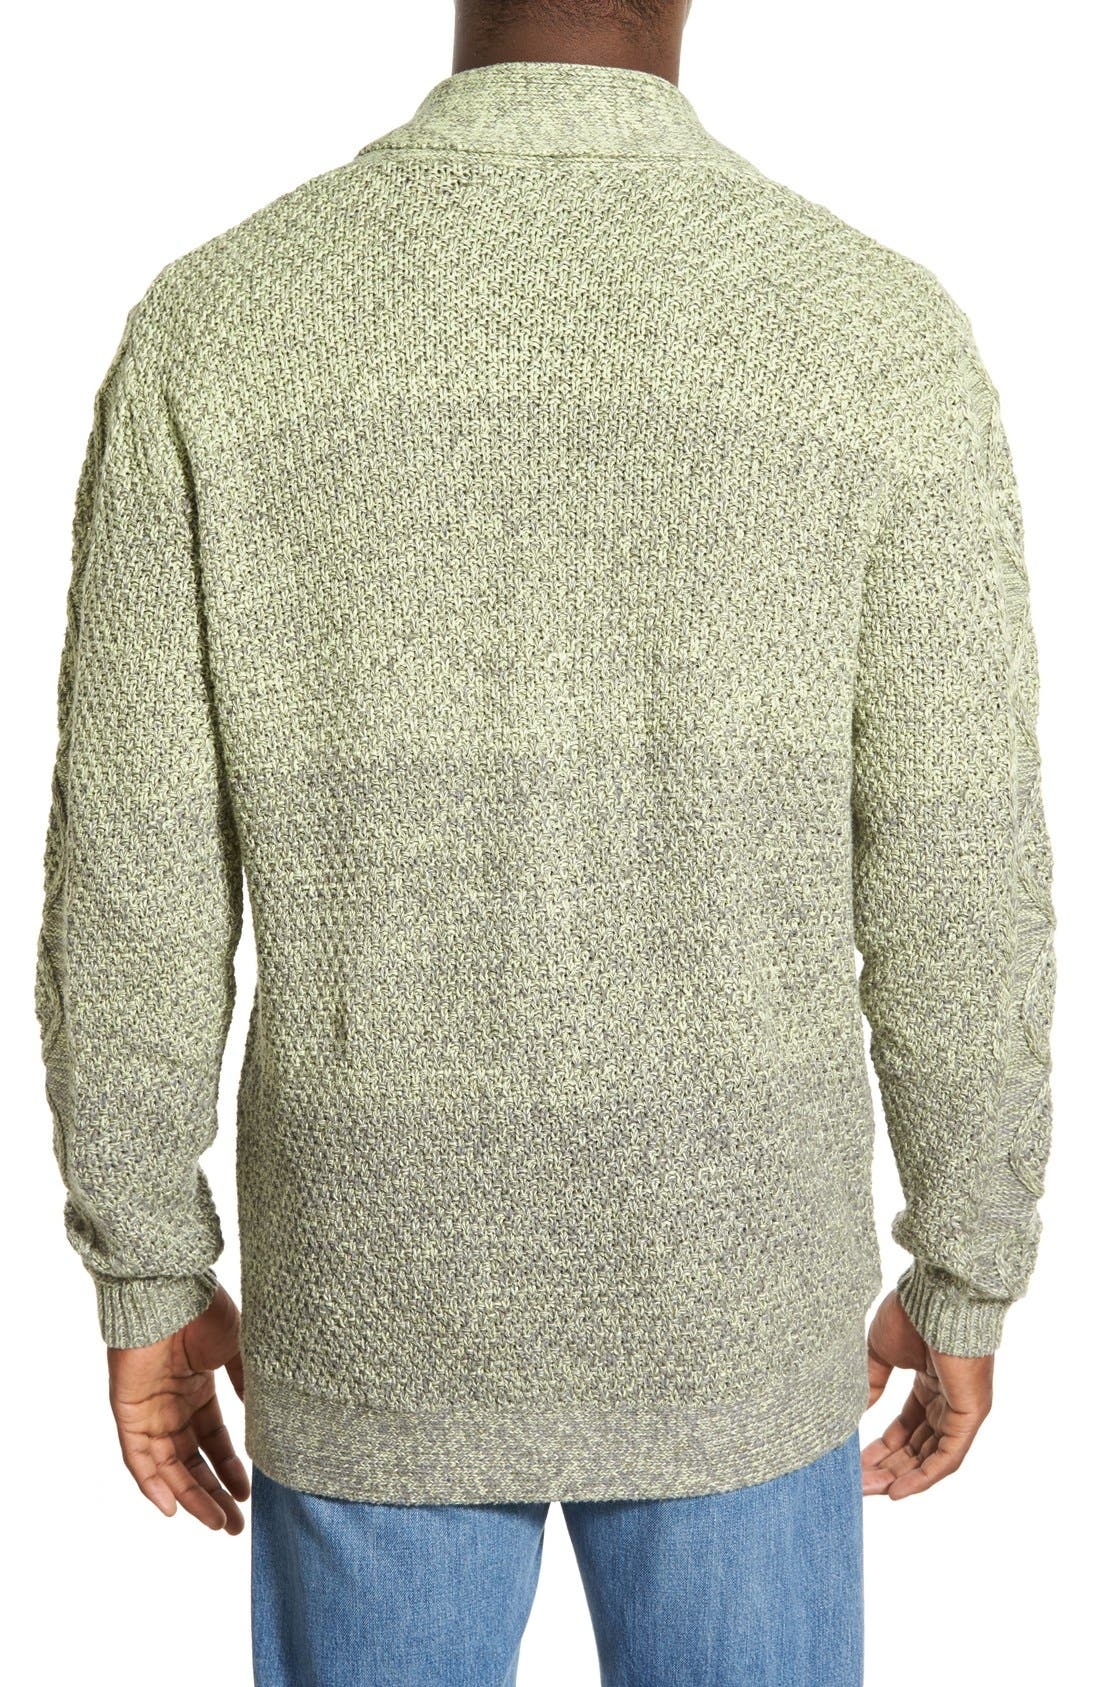 'Boston' Colorblock Mixed Knit Shawl Collar Cardigan,                             Alternate thumbnail 2, color,                             Olive